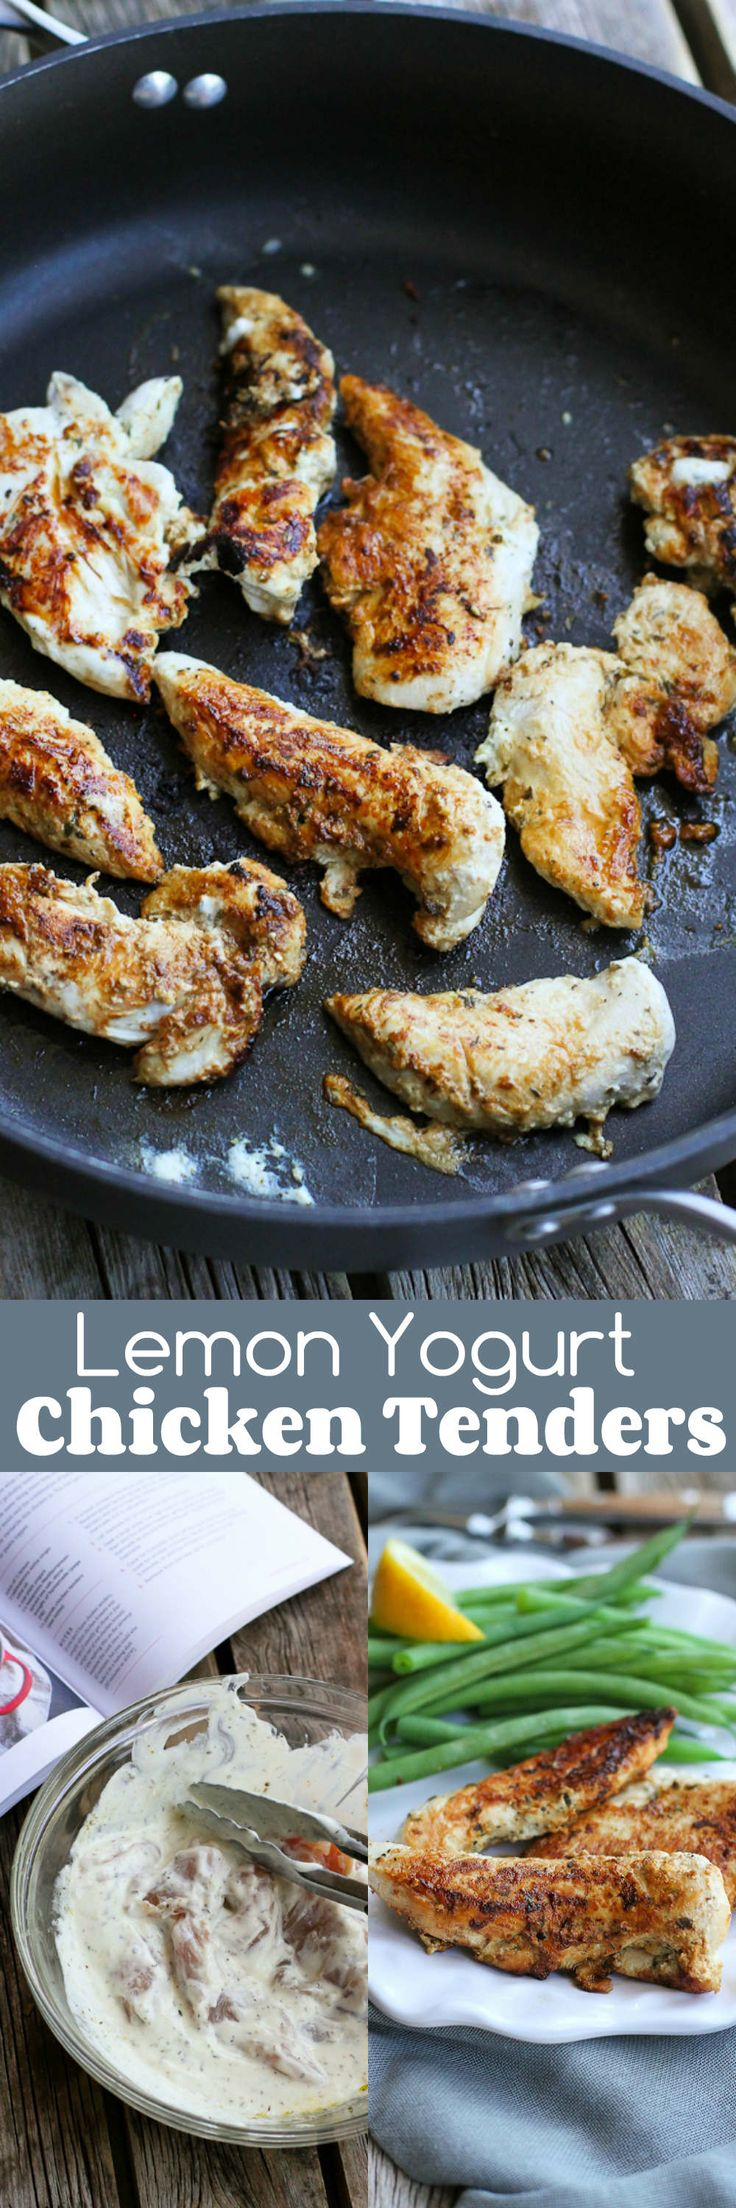 Lemon Yogurt Chicken Tenders…Eat these on their own, use them to top salads or cut up and tossed in pasta! 191 calories and 2 Weight Watchers SmartPoints